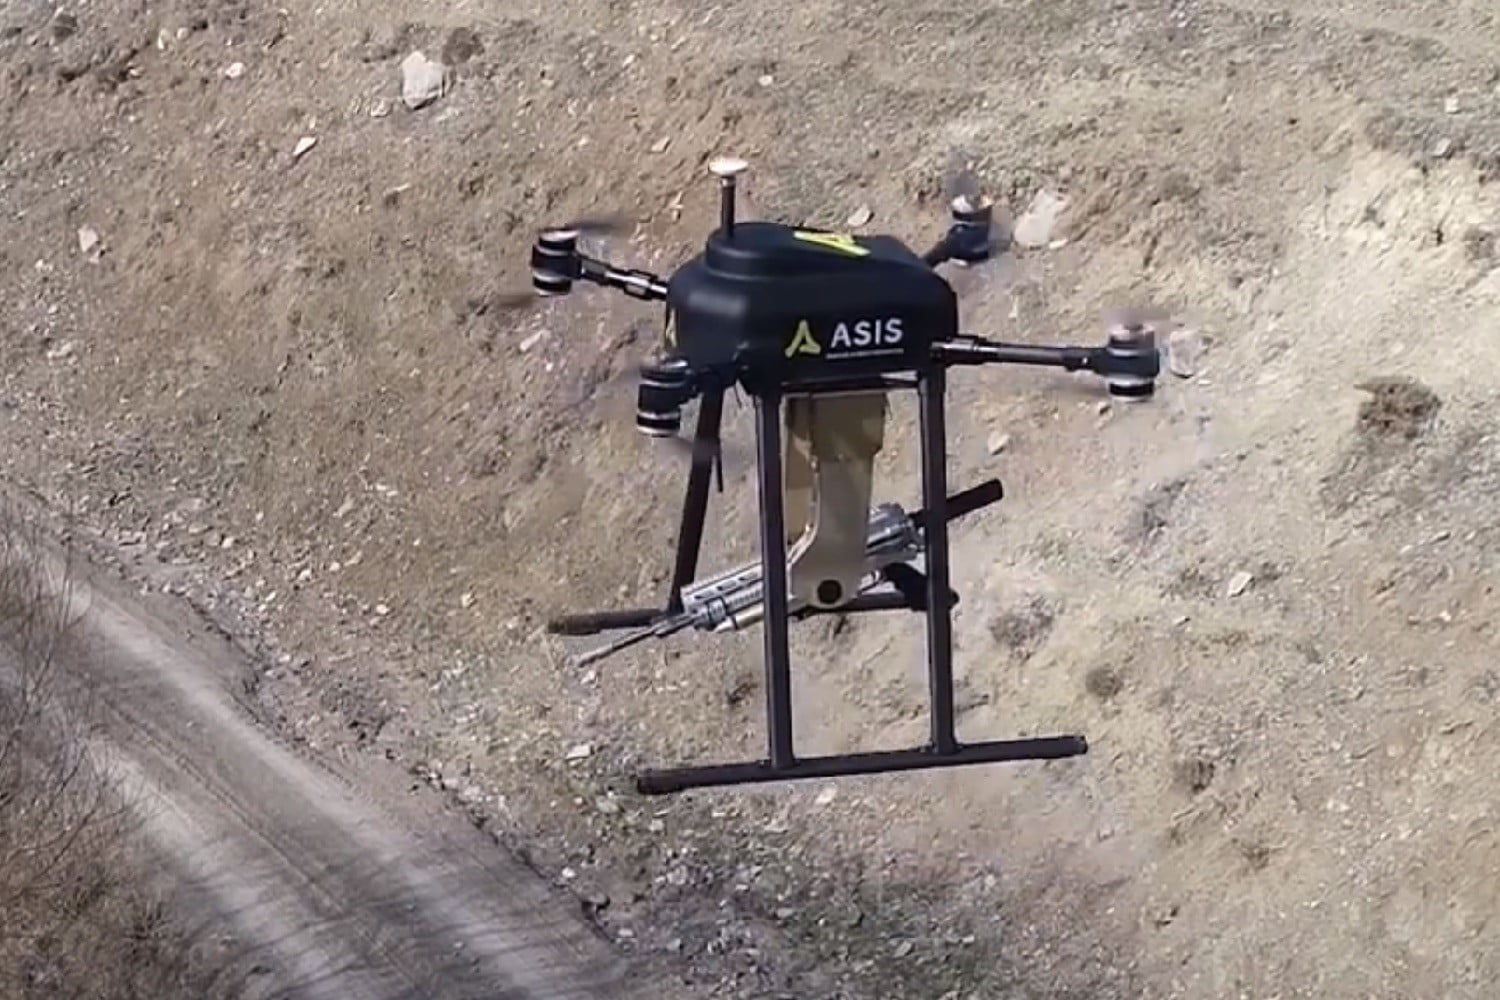 Turkey's new machine gun drones are proof that we live in a cyberpunk dystopia